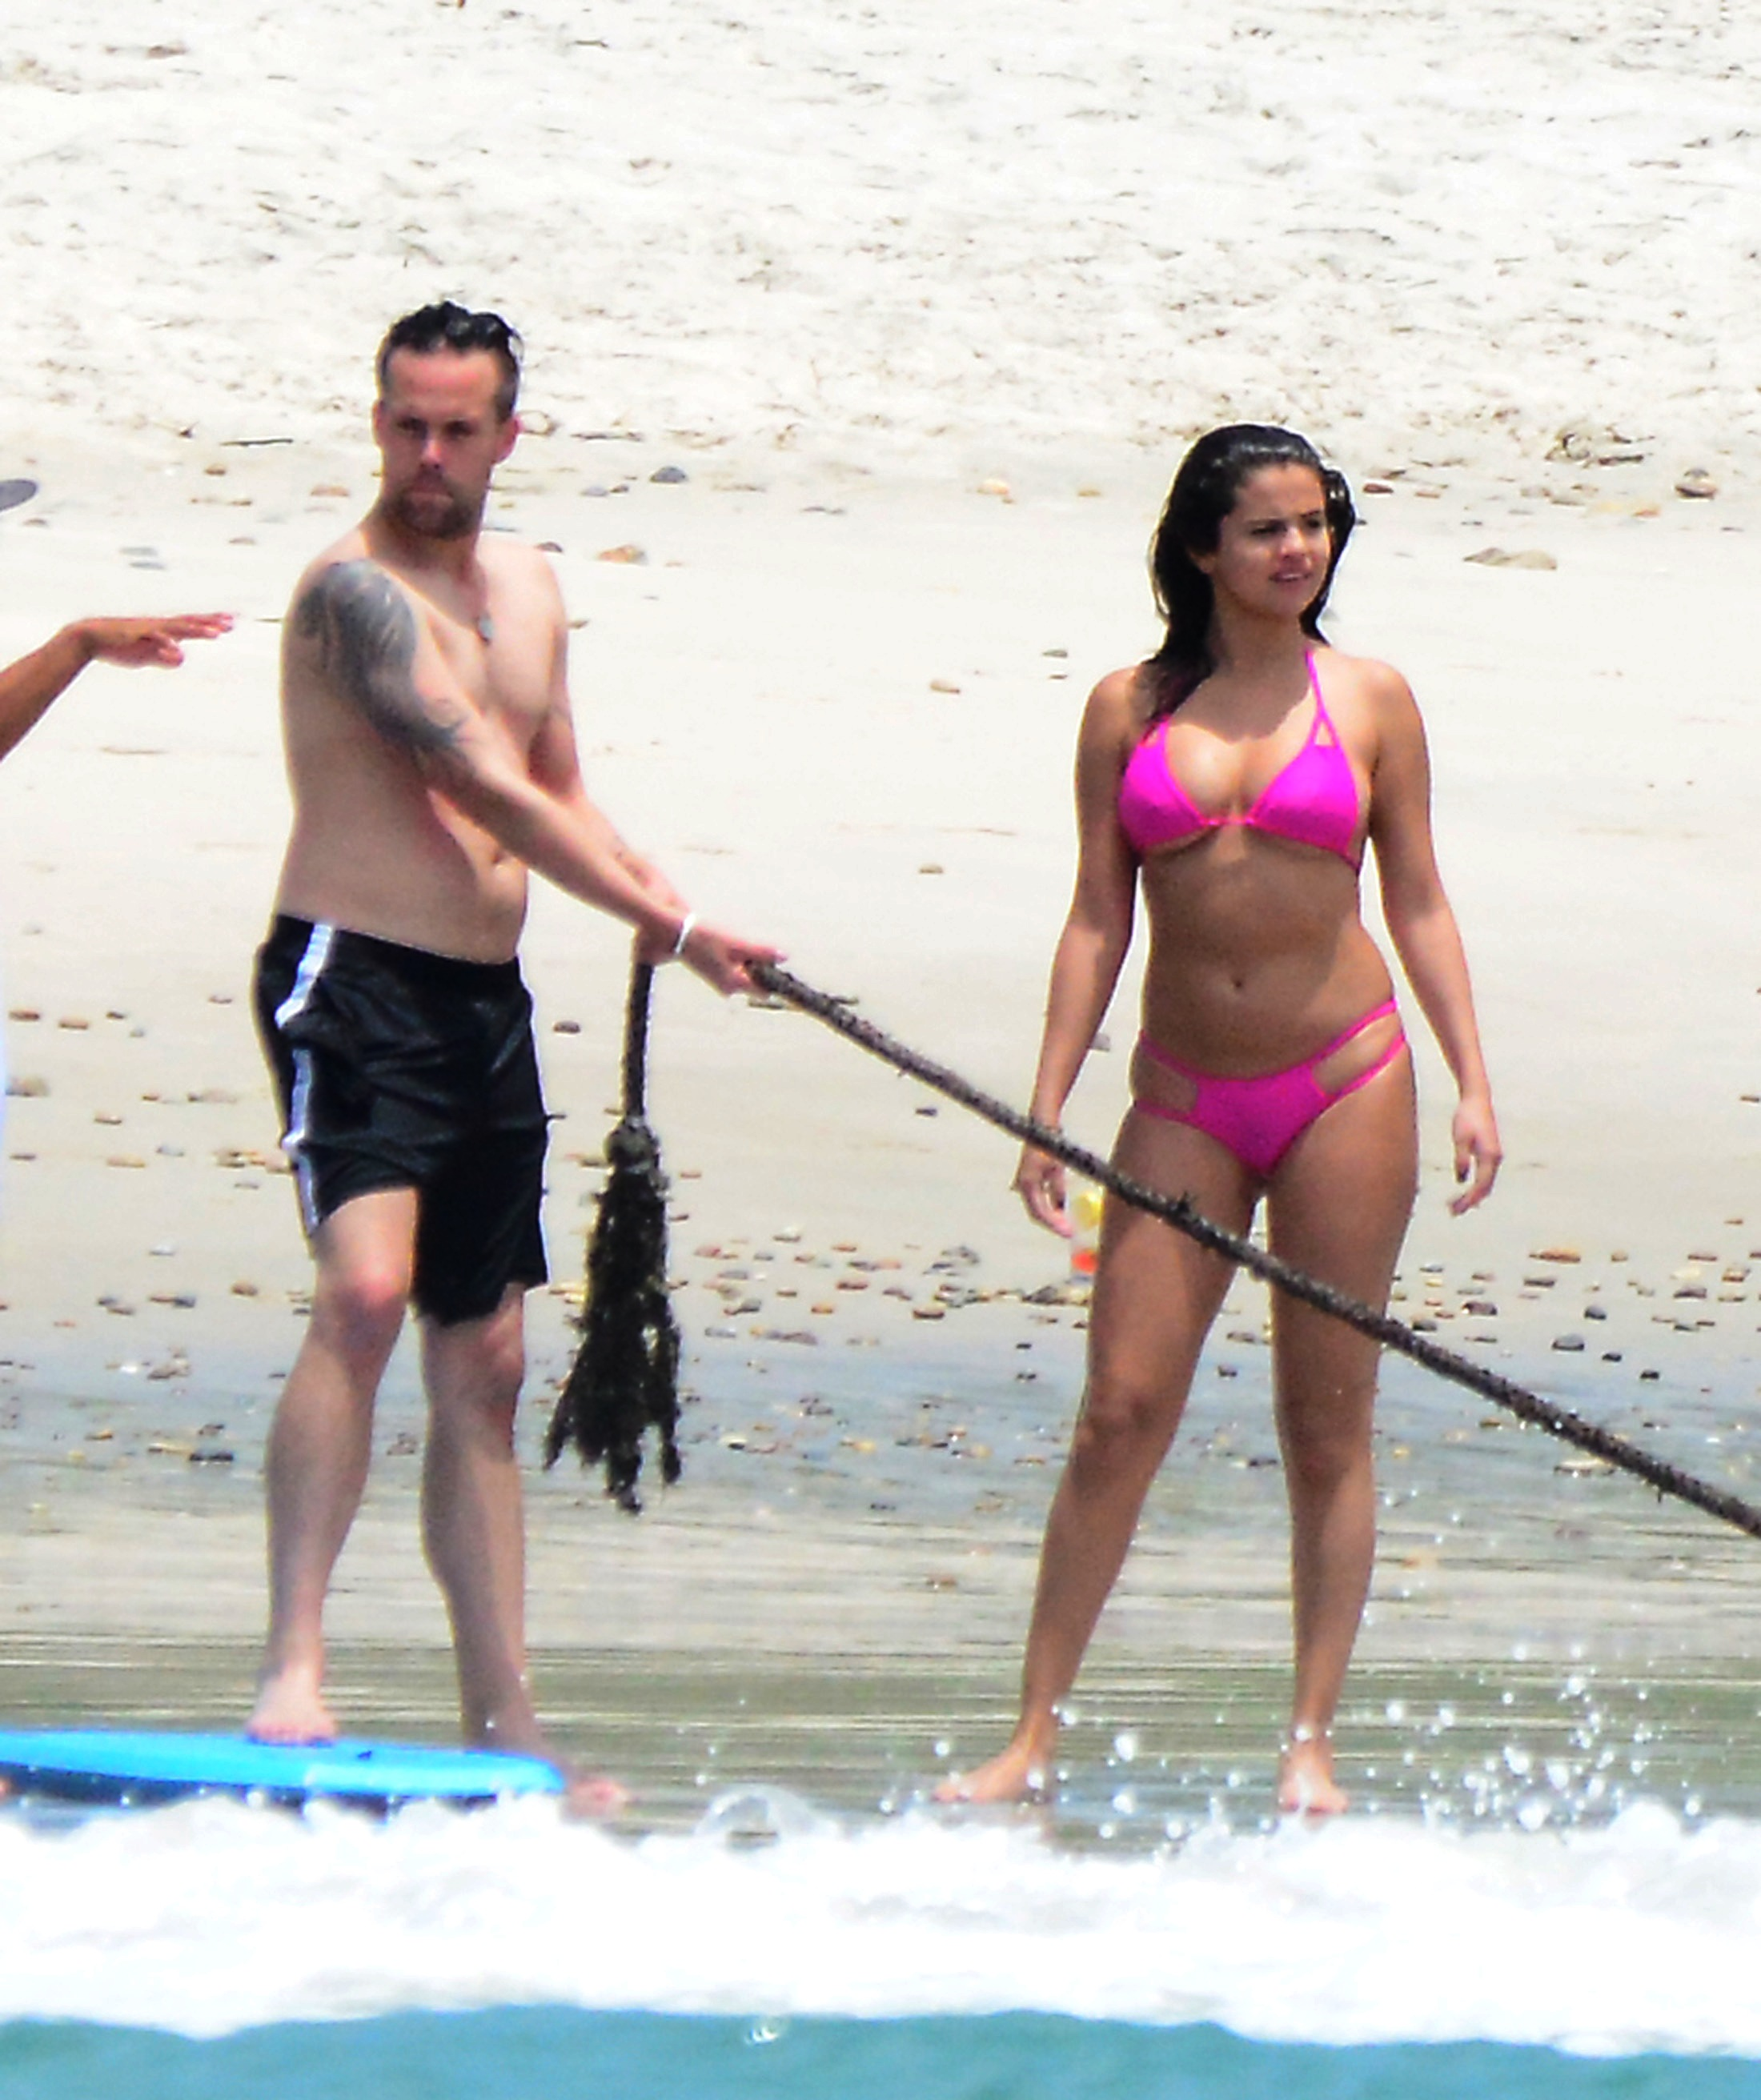 selena gomez weight gain bikini purple (2)